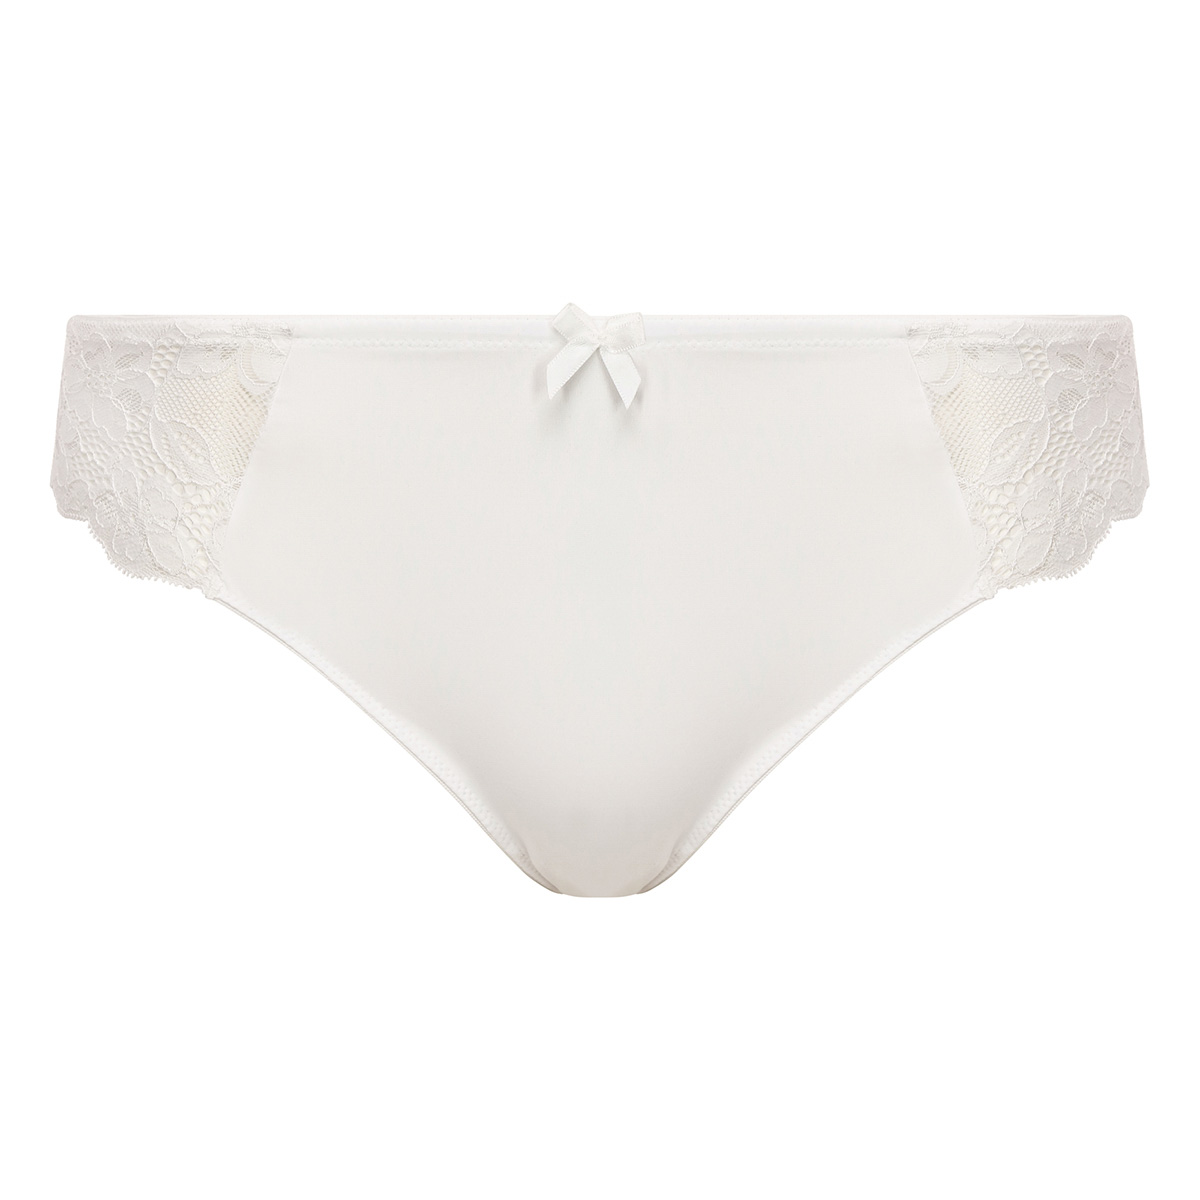 Slip mini bianco Essential Elegance, , PLAYTEX